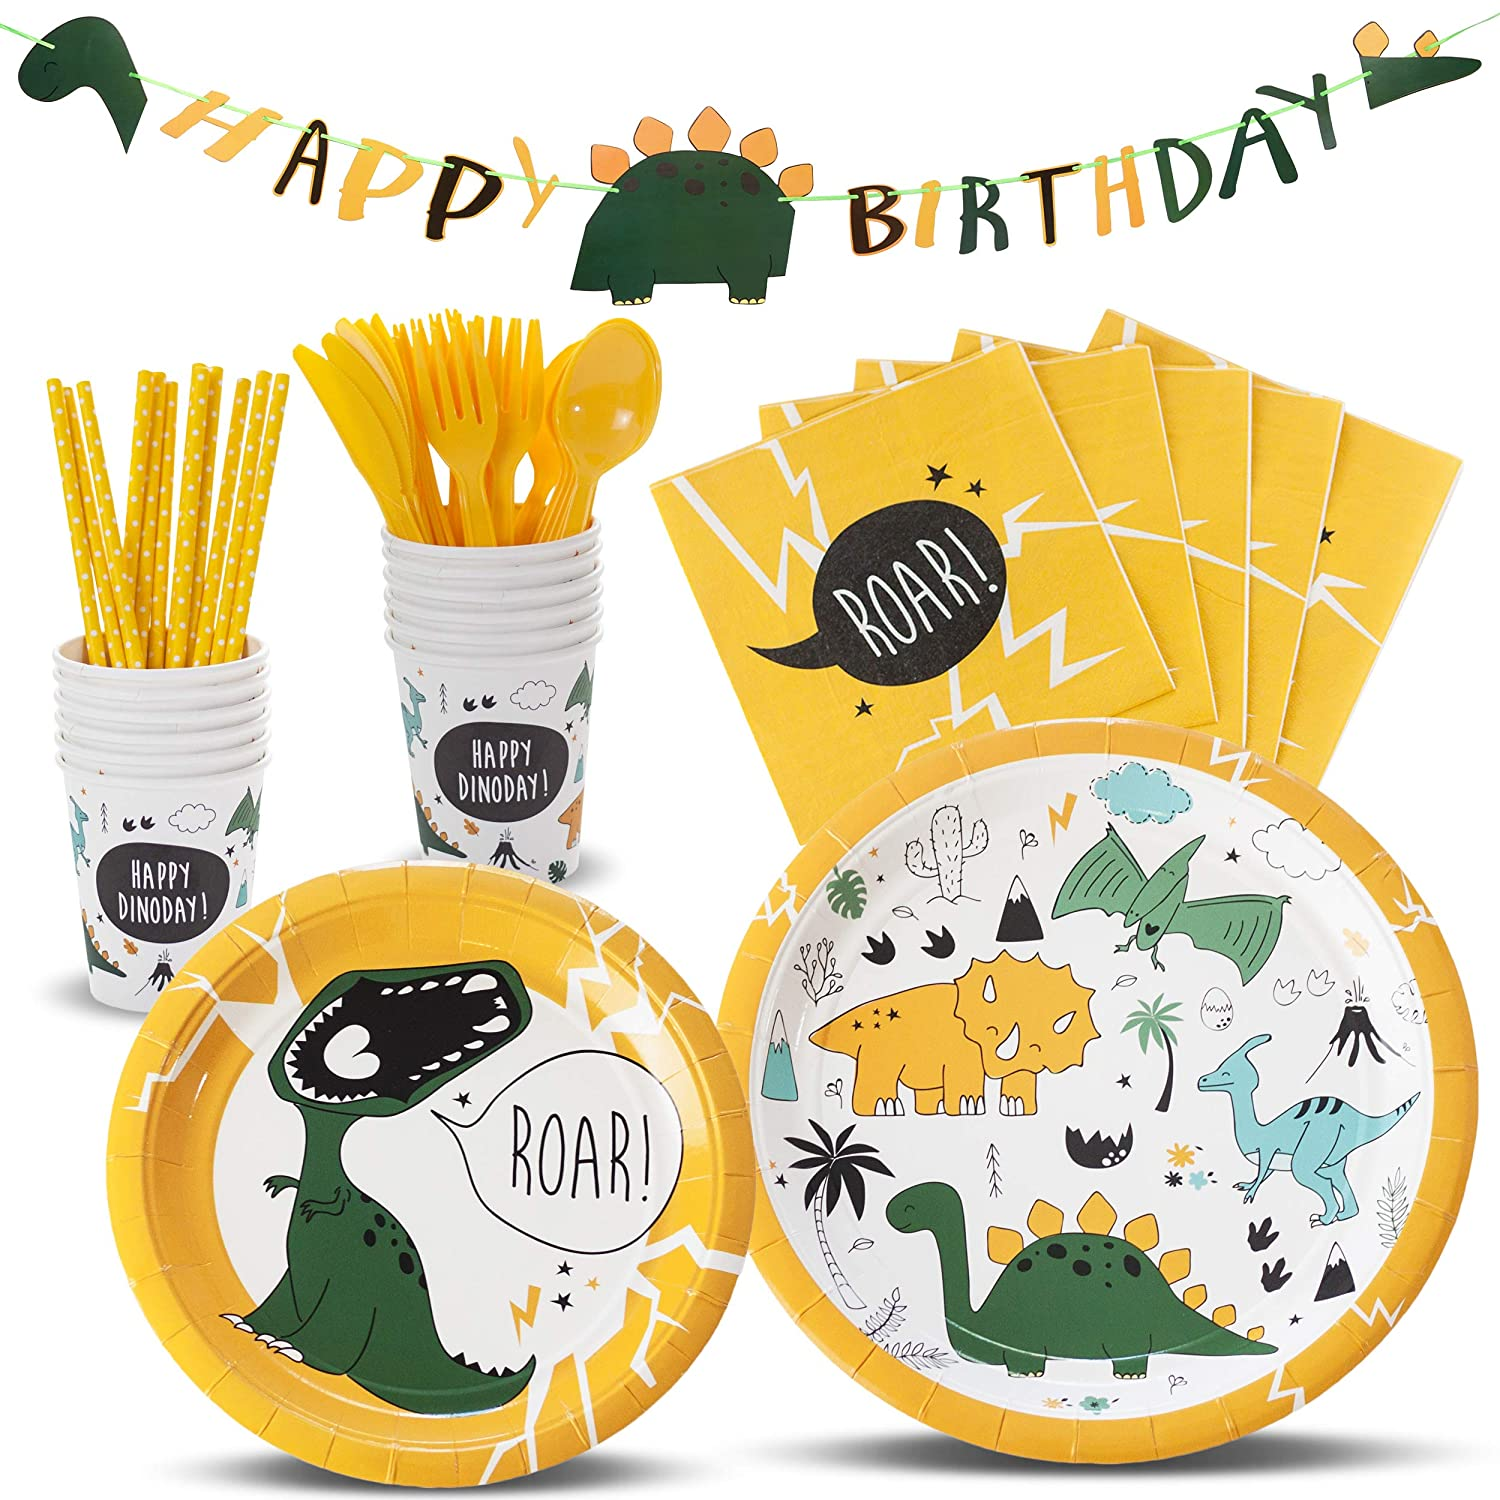 Dinosaur Party Bundles for 12 Guests